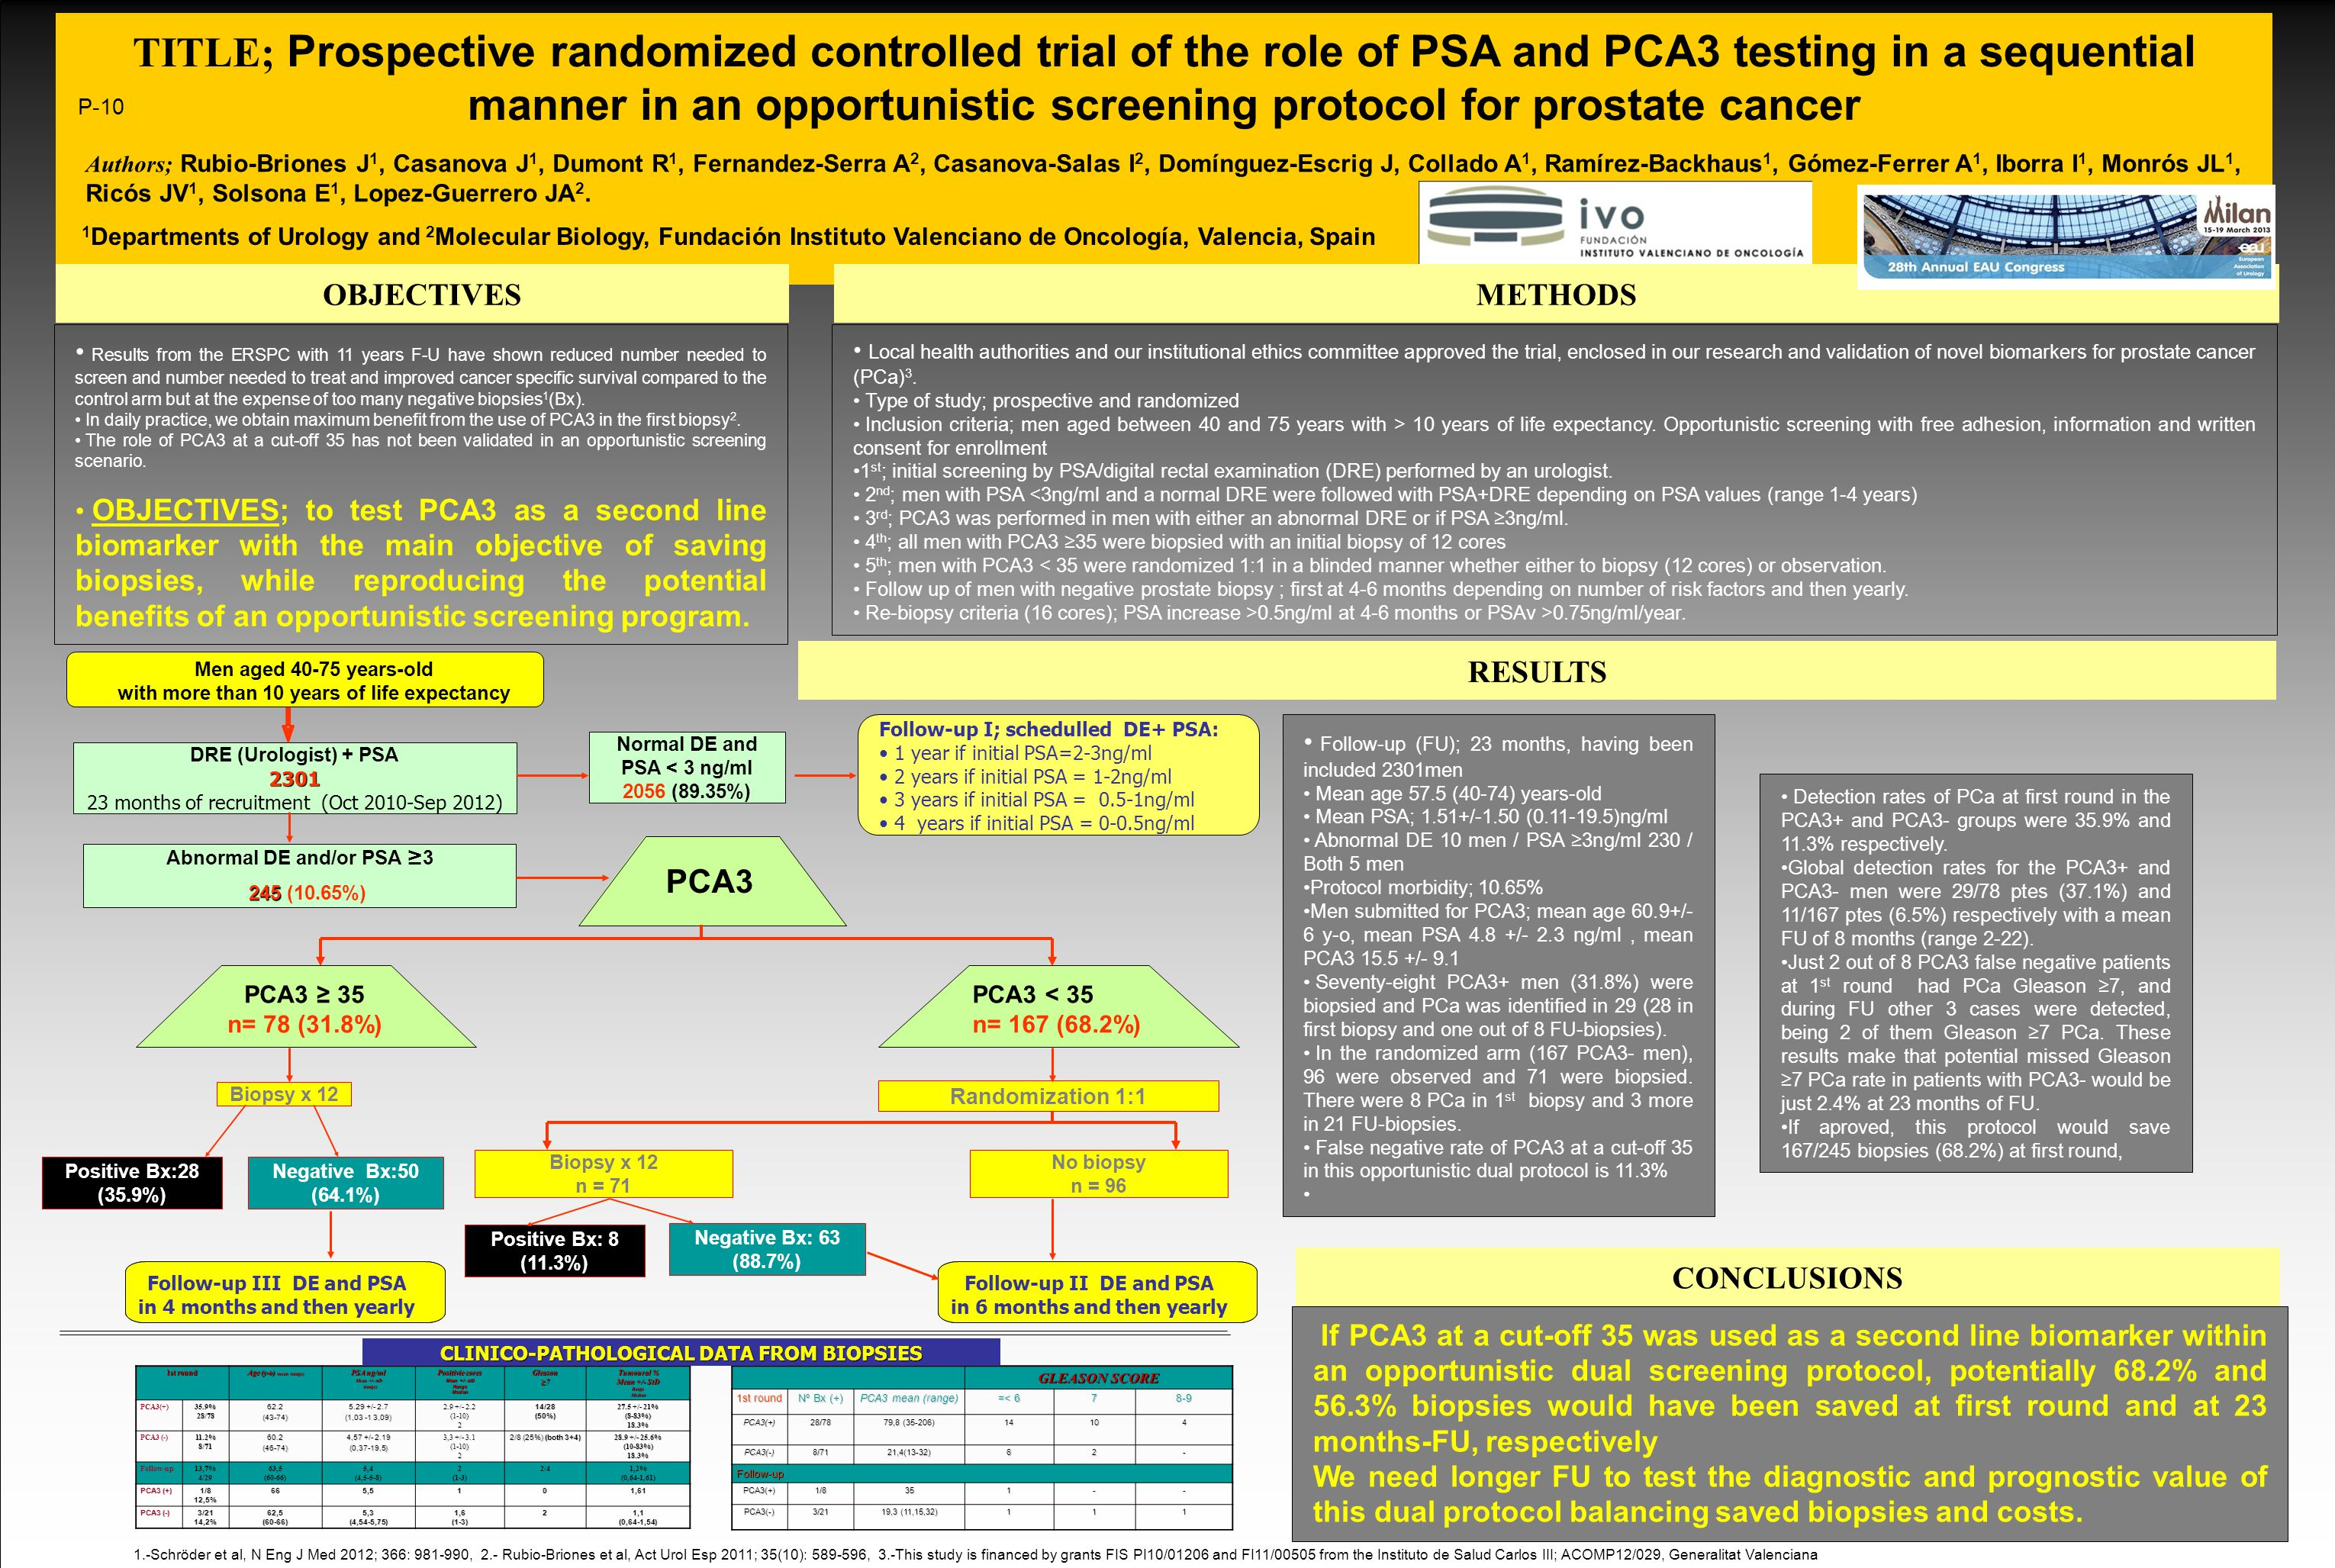 RESULTS TITLE; Prospective randomized controlled trial of the role of PSA and PCA3 testing in a sequential manner in an opportunistic screening protocol for prostate cancer Authors; Rubio-Briones J 1, Casanova J 1, Dumont R 1, Fernandez-Serra A 2, Casanova-Salas I 2, Domínguez-Escrig J, Collado A 1, Ramírez-Backhaus 1, Gómez-Ferrer A 1, Iborra I 1, Monrós JL 1, Ricós JV 1, Solsona E 1, Lopez-Guerrero JA 2.